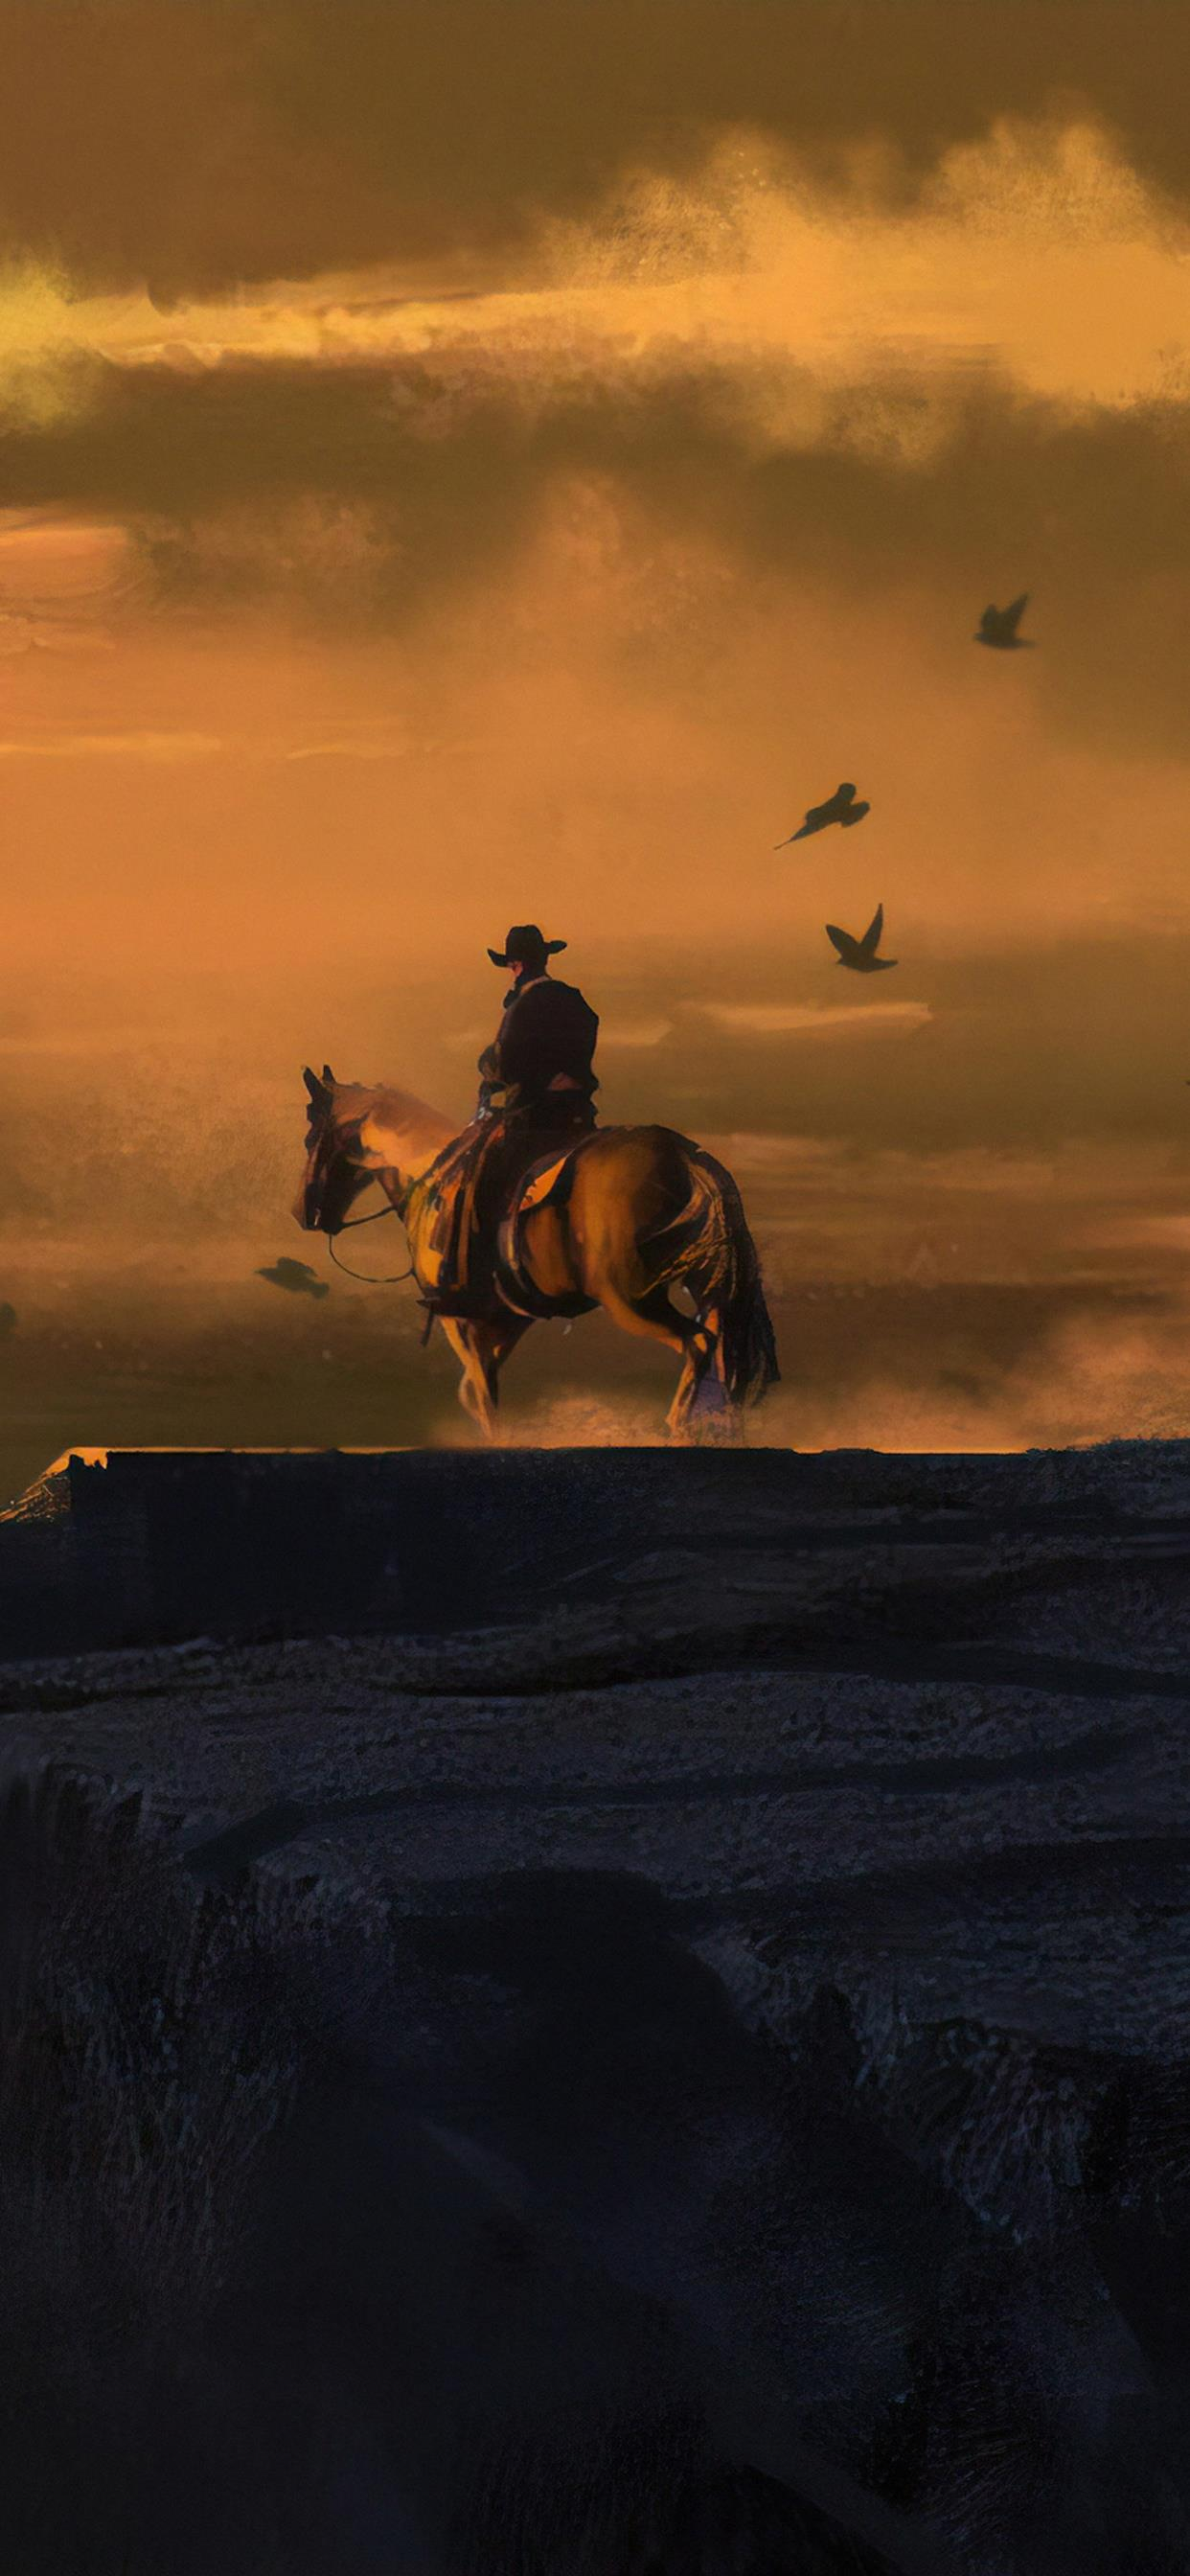 317 3170571 red dead redemption 2 wallpaper iphone